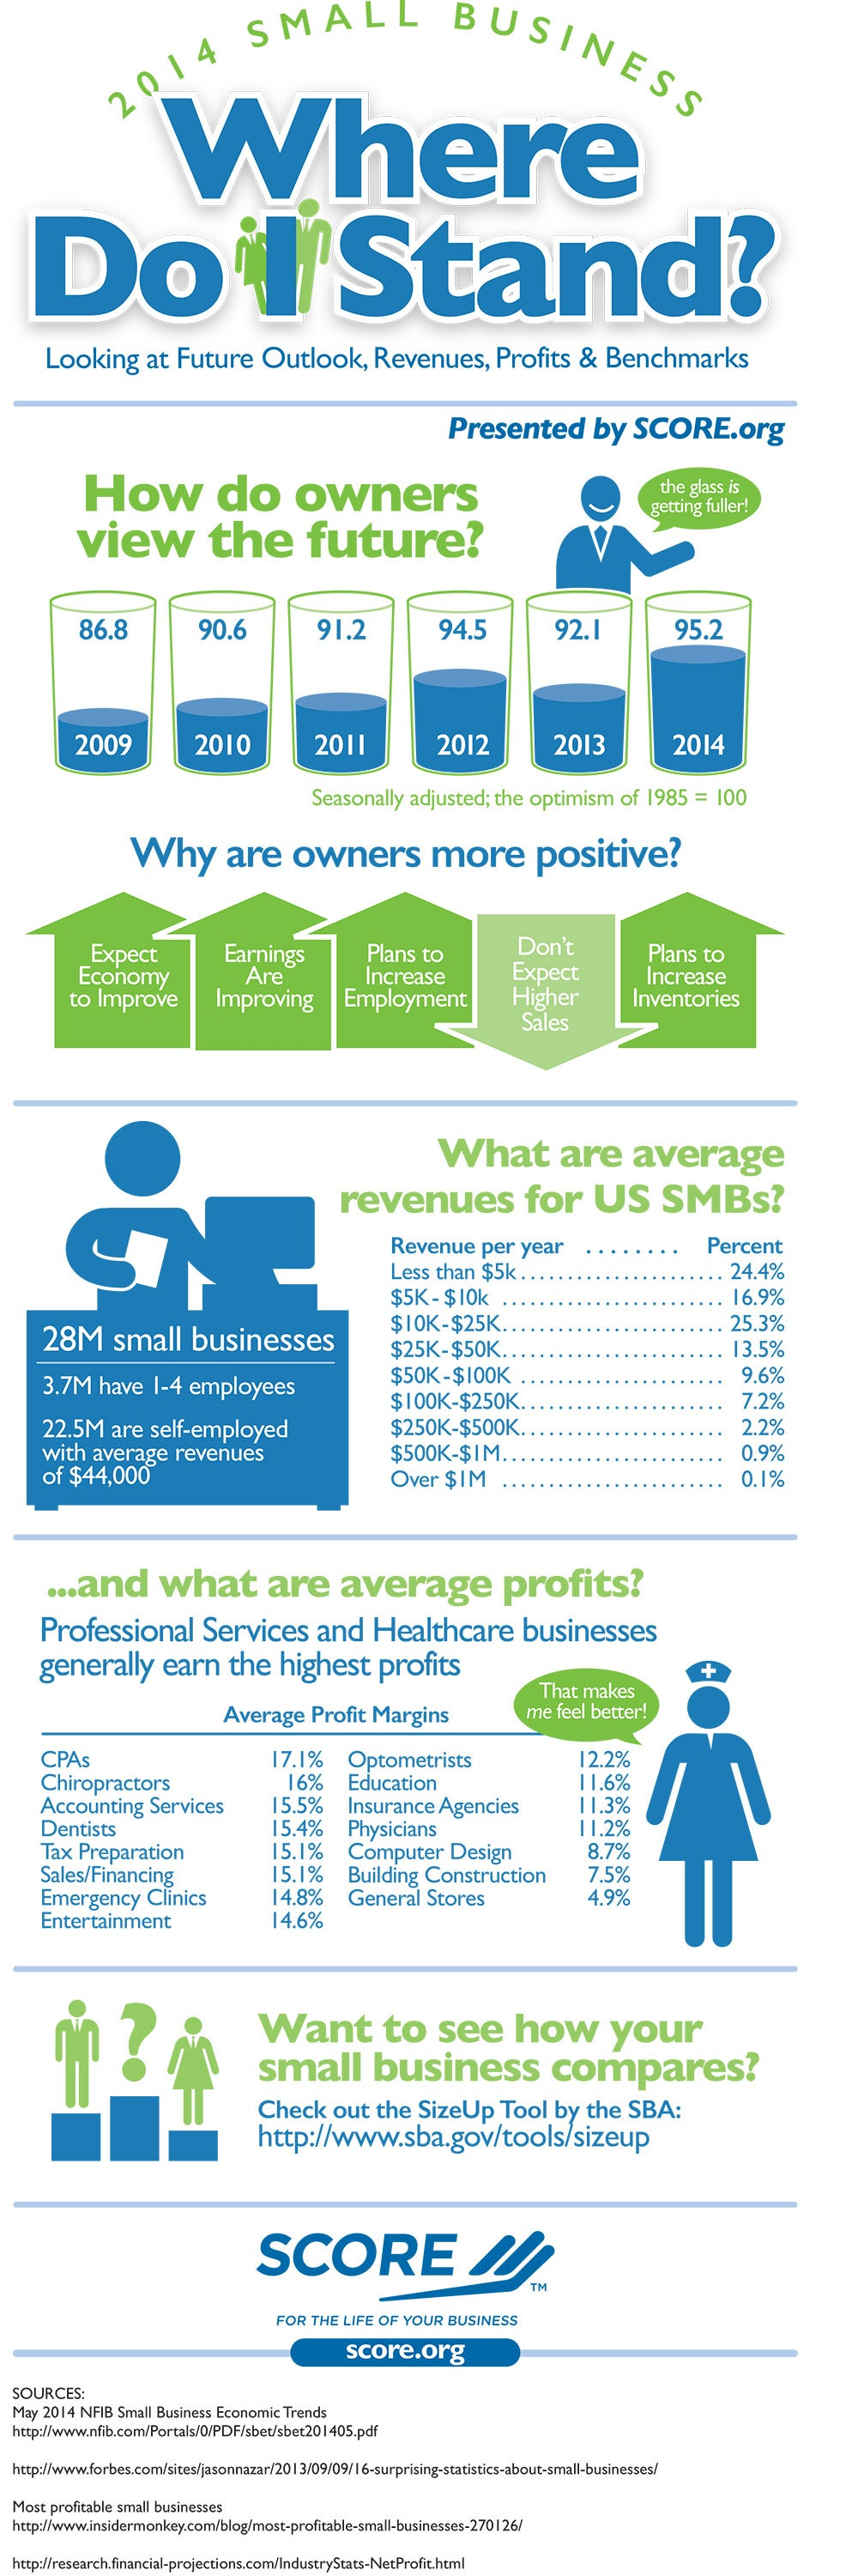 Small Business Owners Are Getting More Positive. Are You? (Infographic)